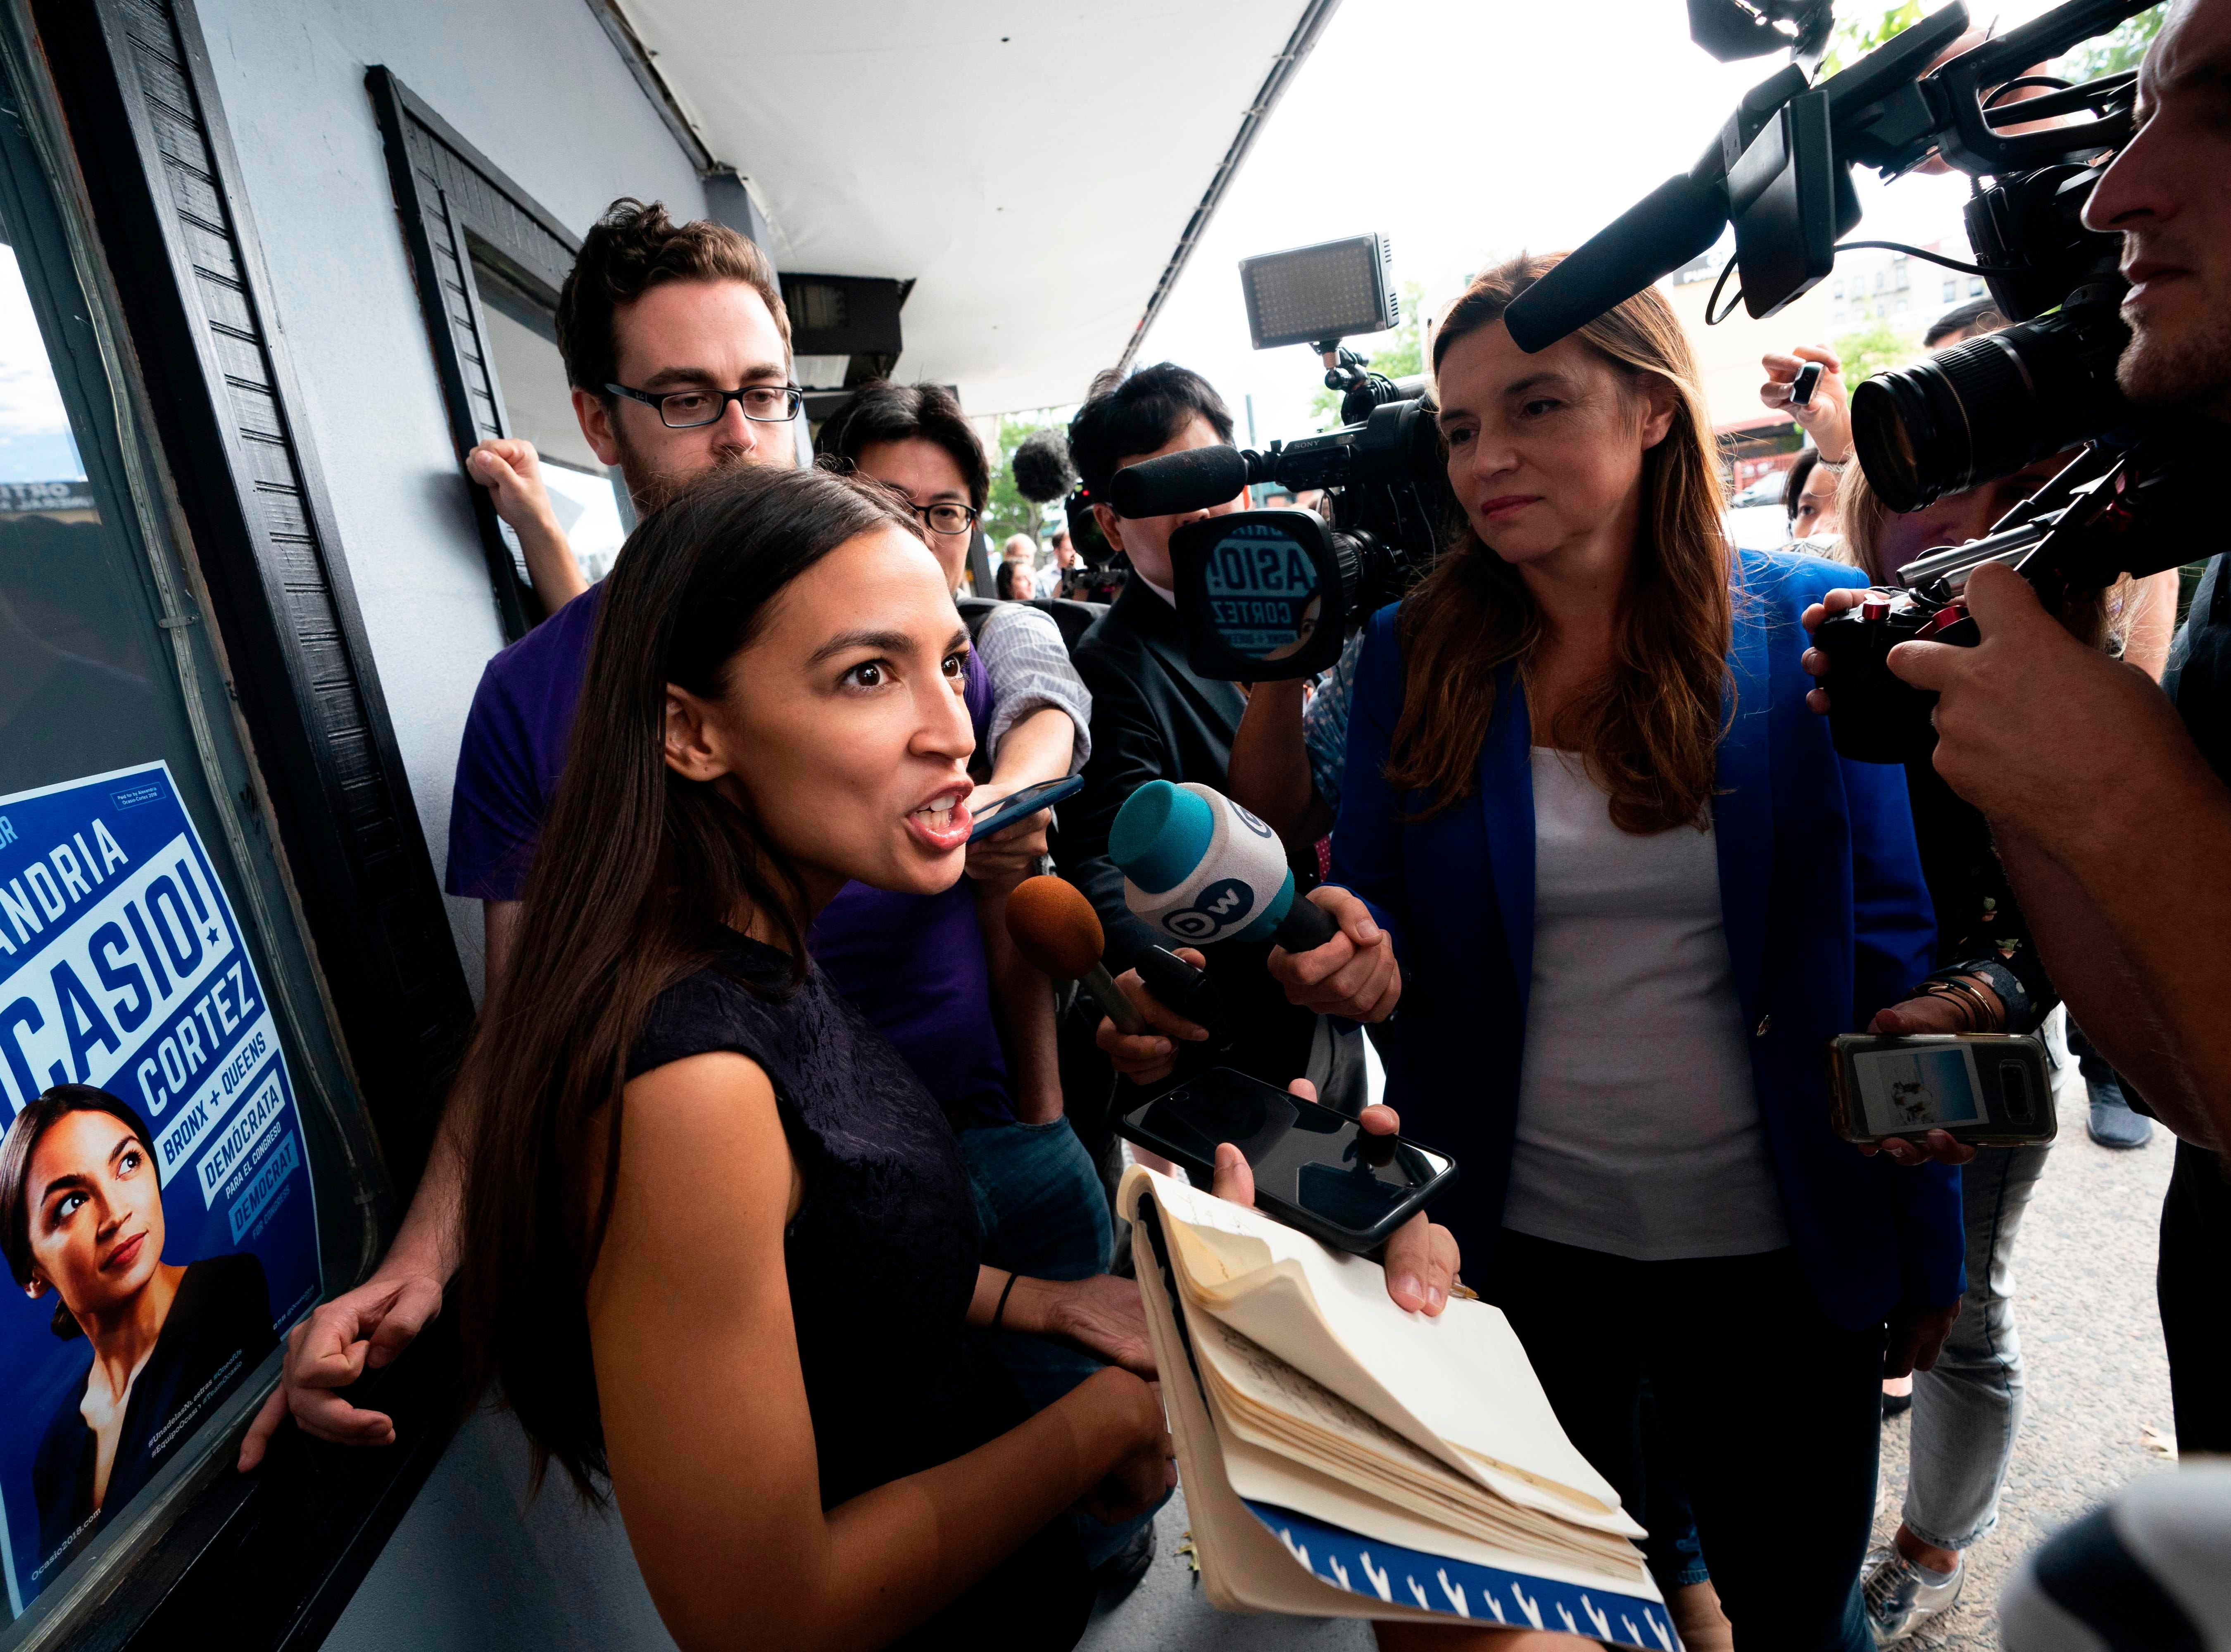 Democratic congressional candidate Alexandria Ocasio-Cortez speaks with  reporters after her general campaign kick-off rally in the Bronx borough of New York on Sept. 22, 2018.